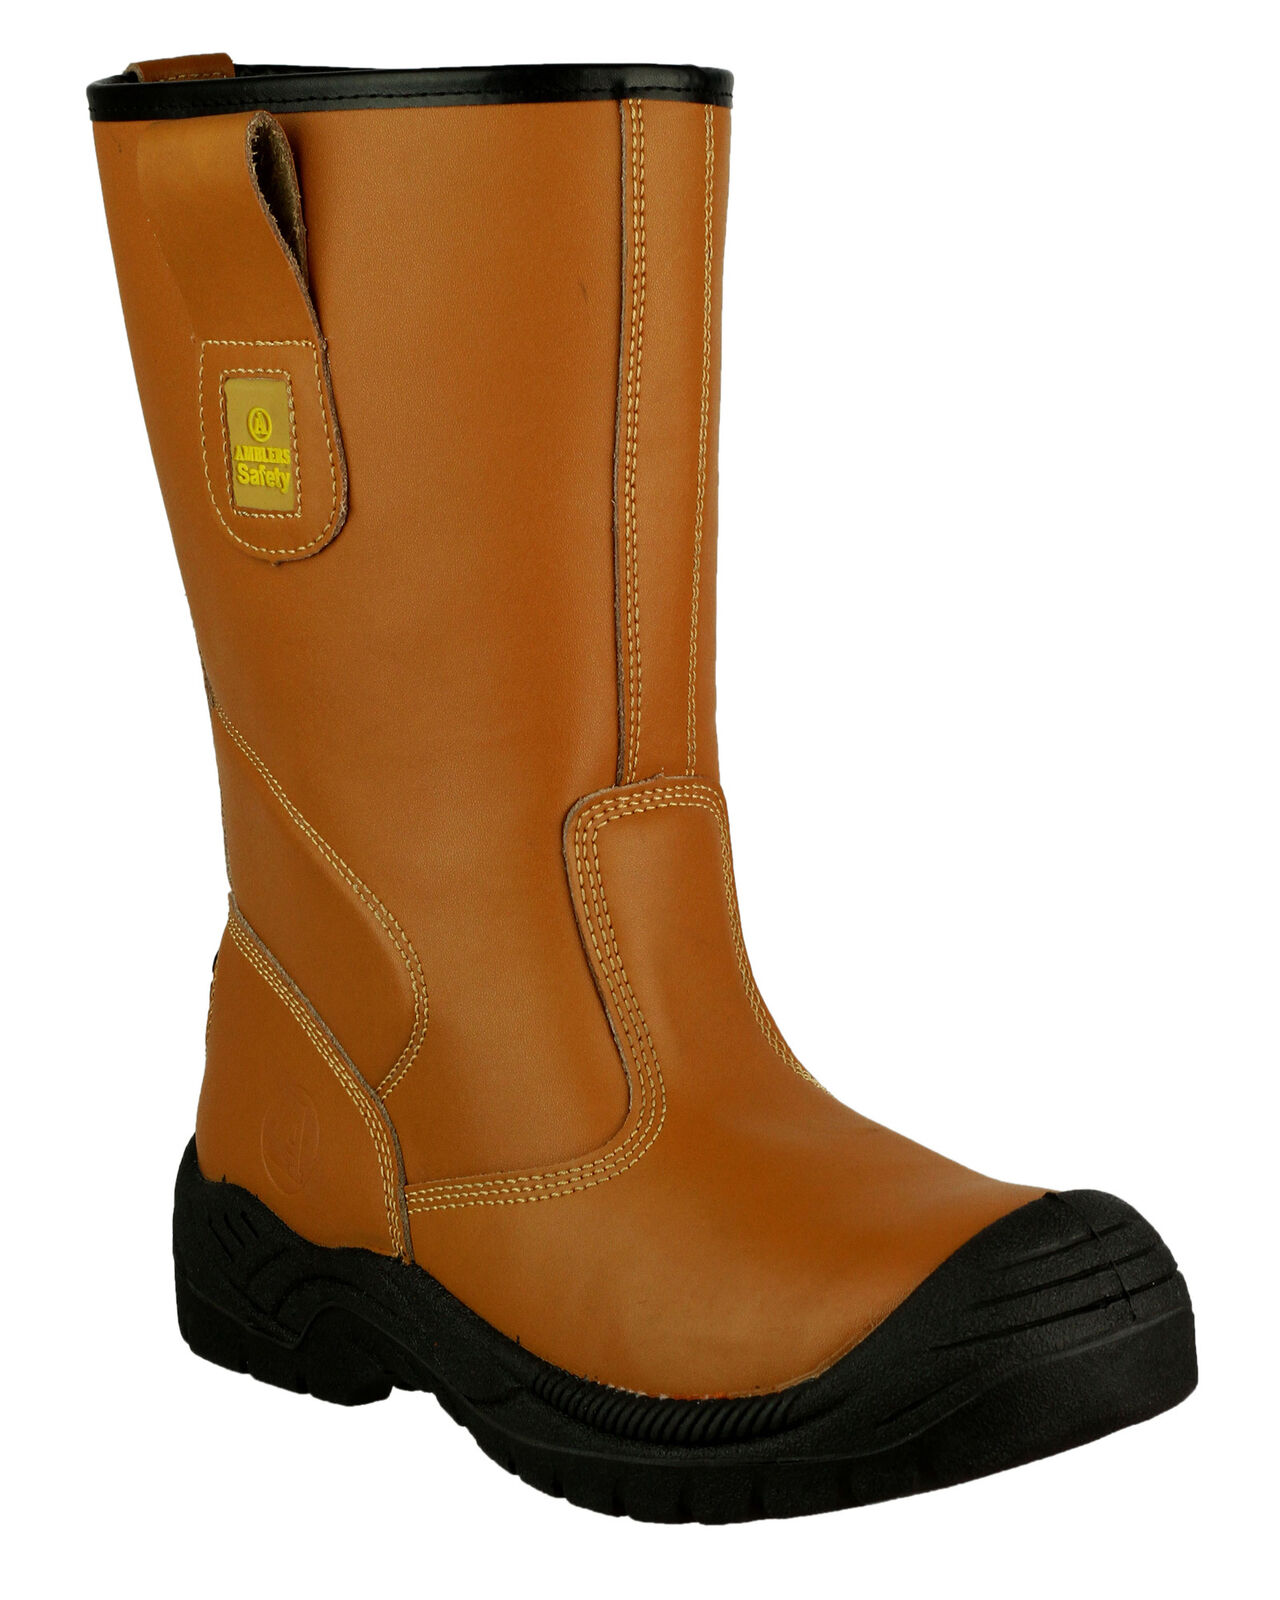 Amblers S3 boot-20427 sicurezza FS142 Sicurezza Rigger boot-20427 S3 c755d5